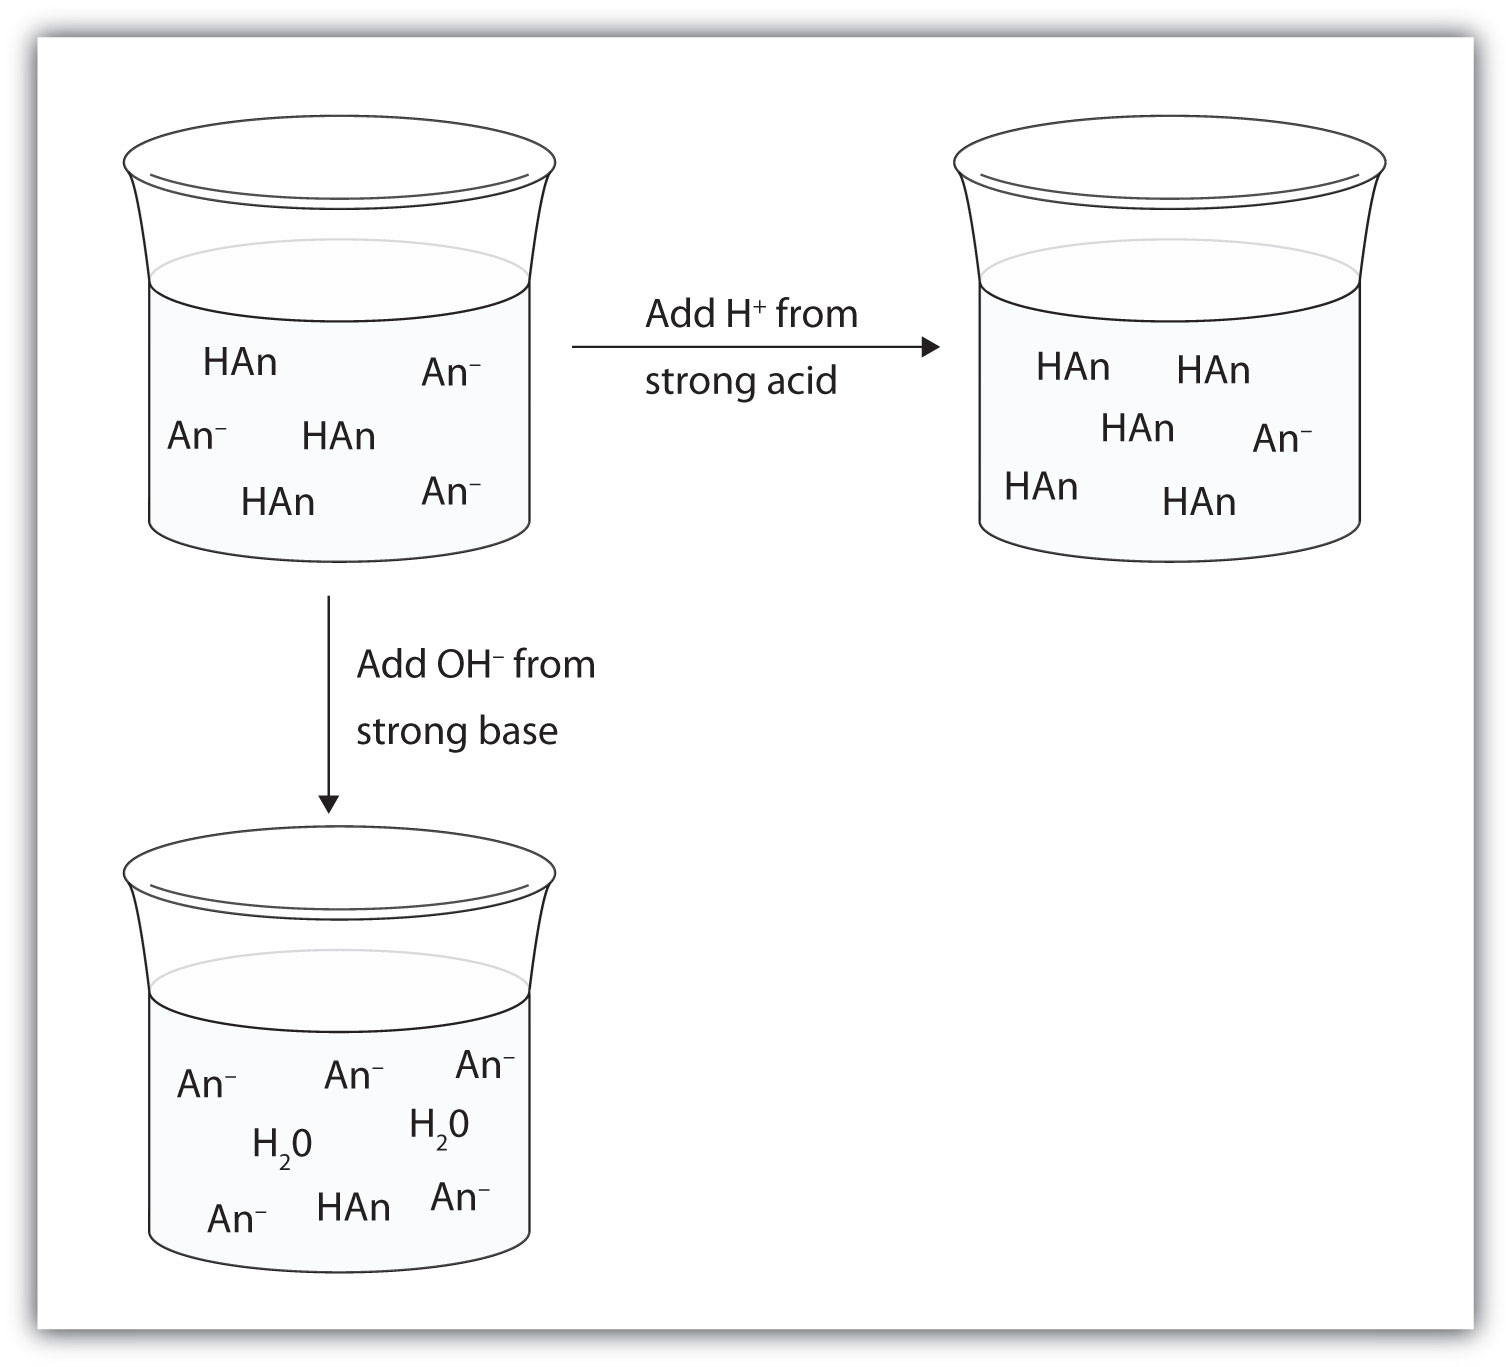 hight resolution of dilute solution diagram u2013 wallpaperdual liquid simultaneous diluter dilute solution diagram acids and bases